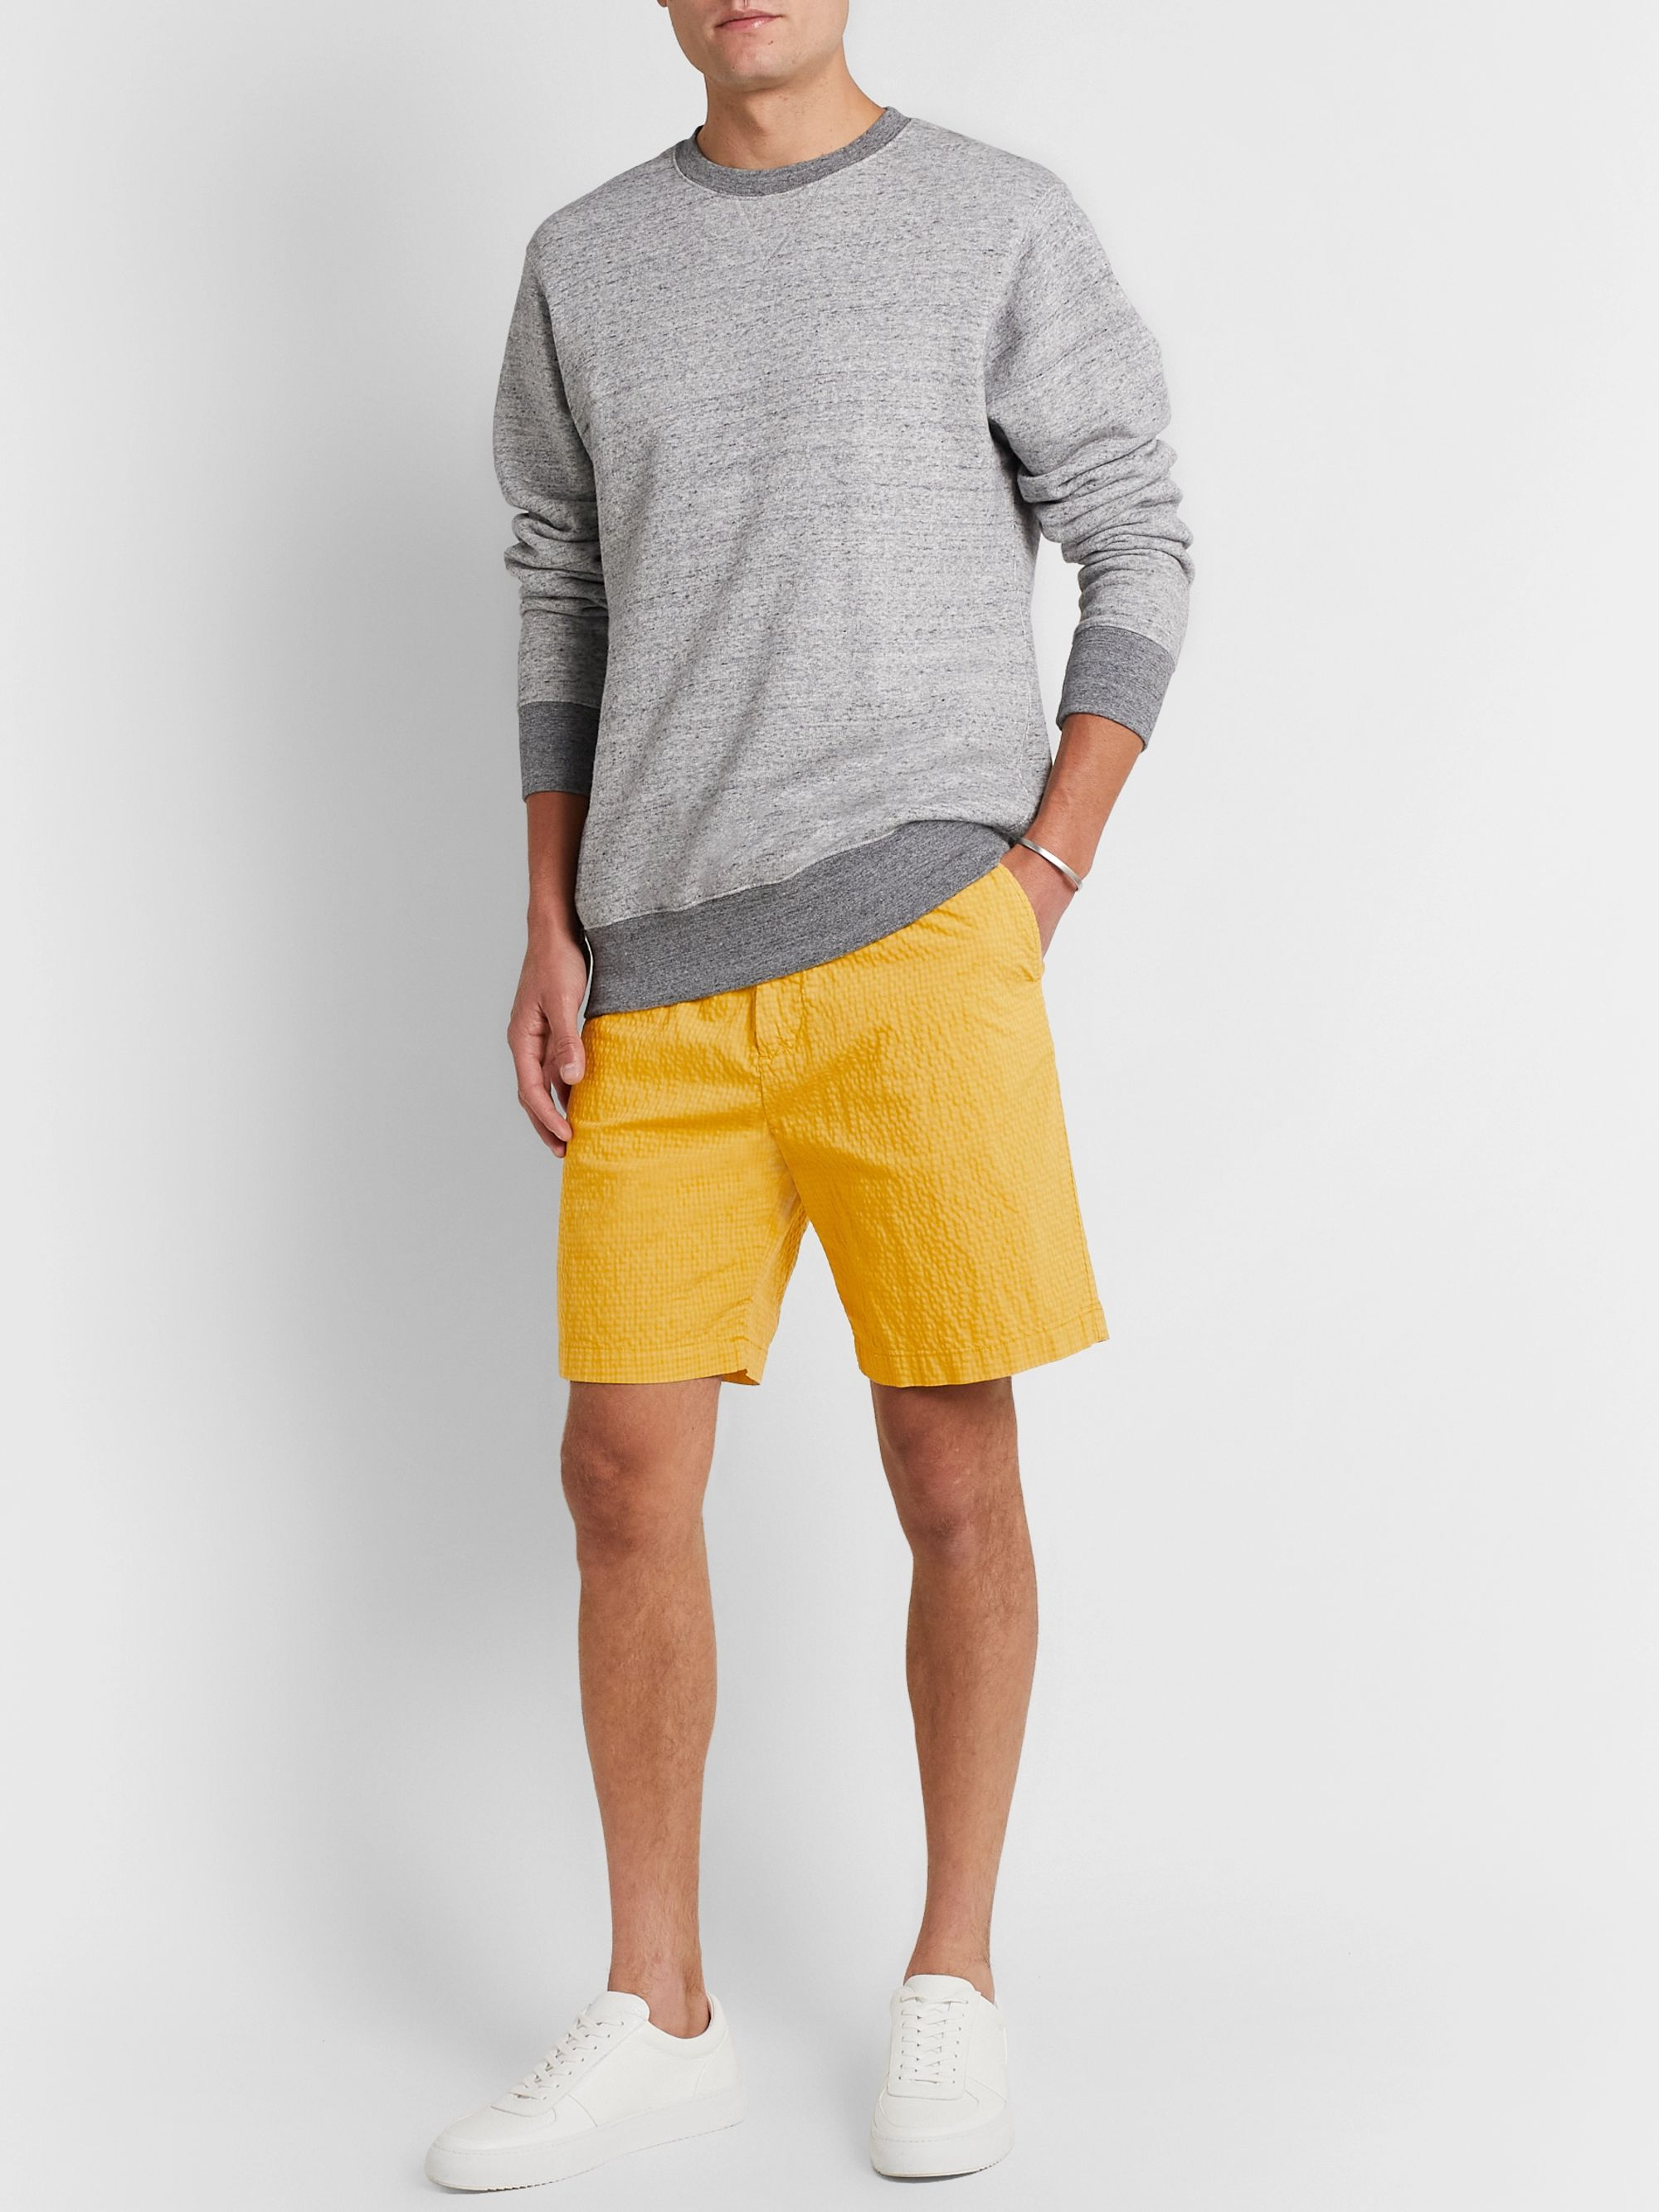 Mr P. Garment-Dyed Cotton-Blend Seersucker Shorts